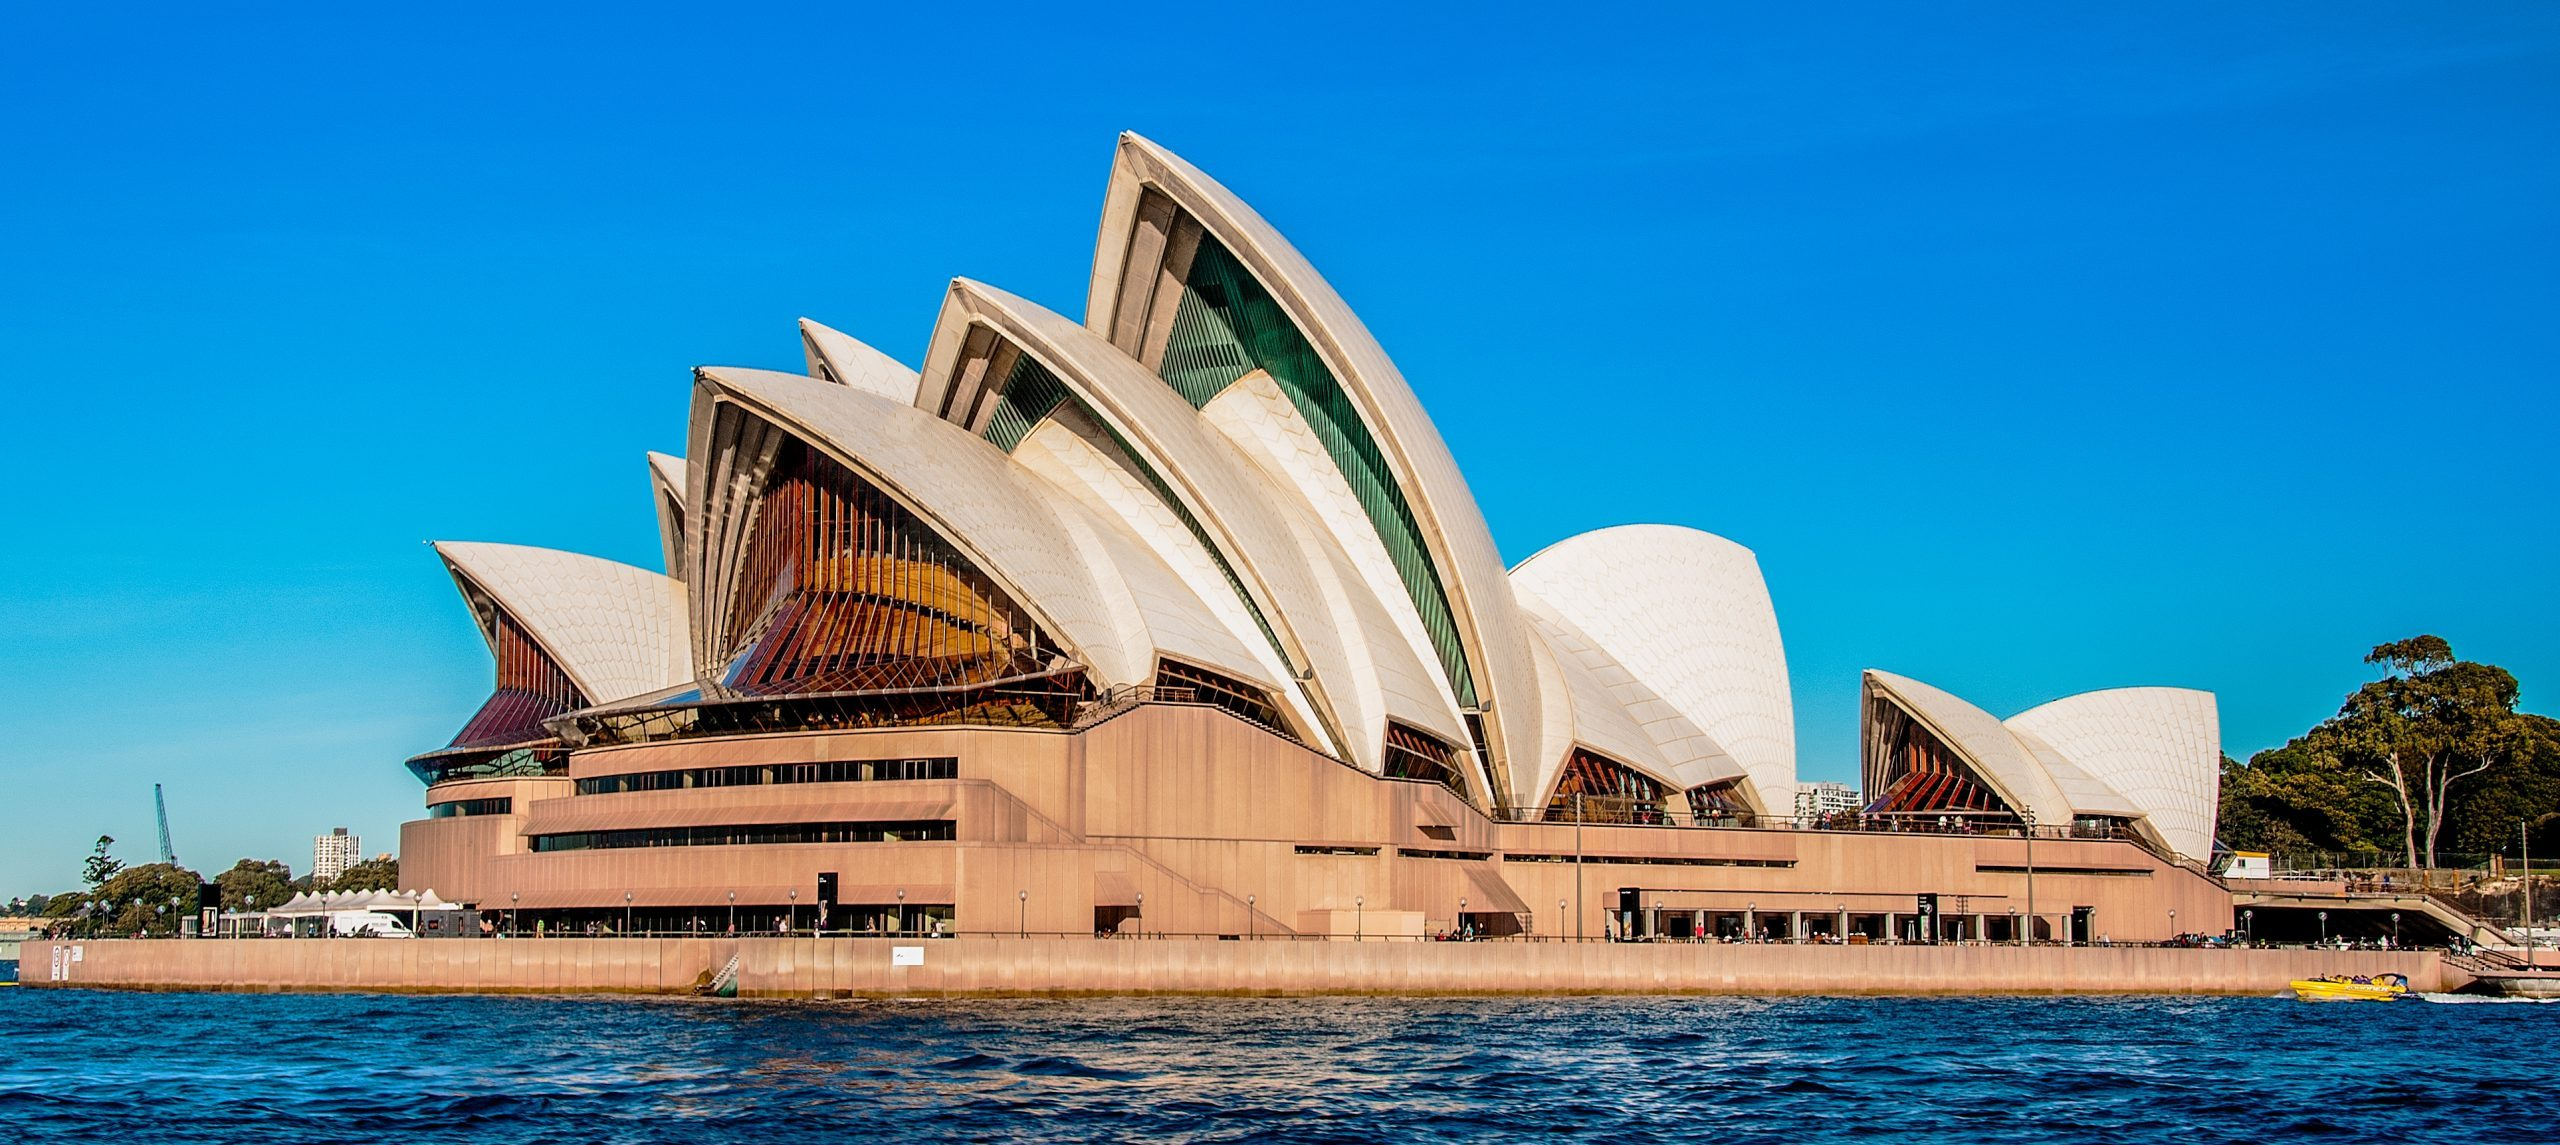 10 reasons to become an Aussie